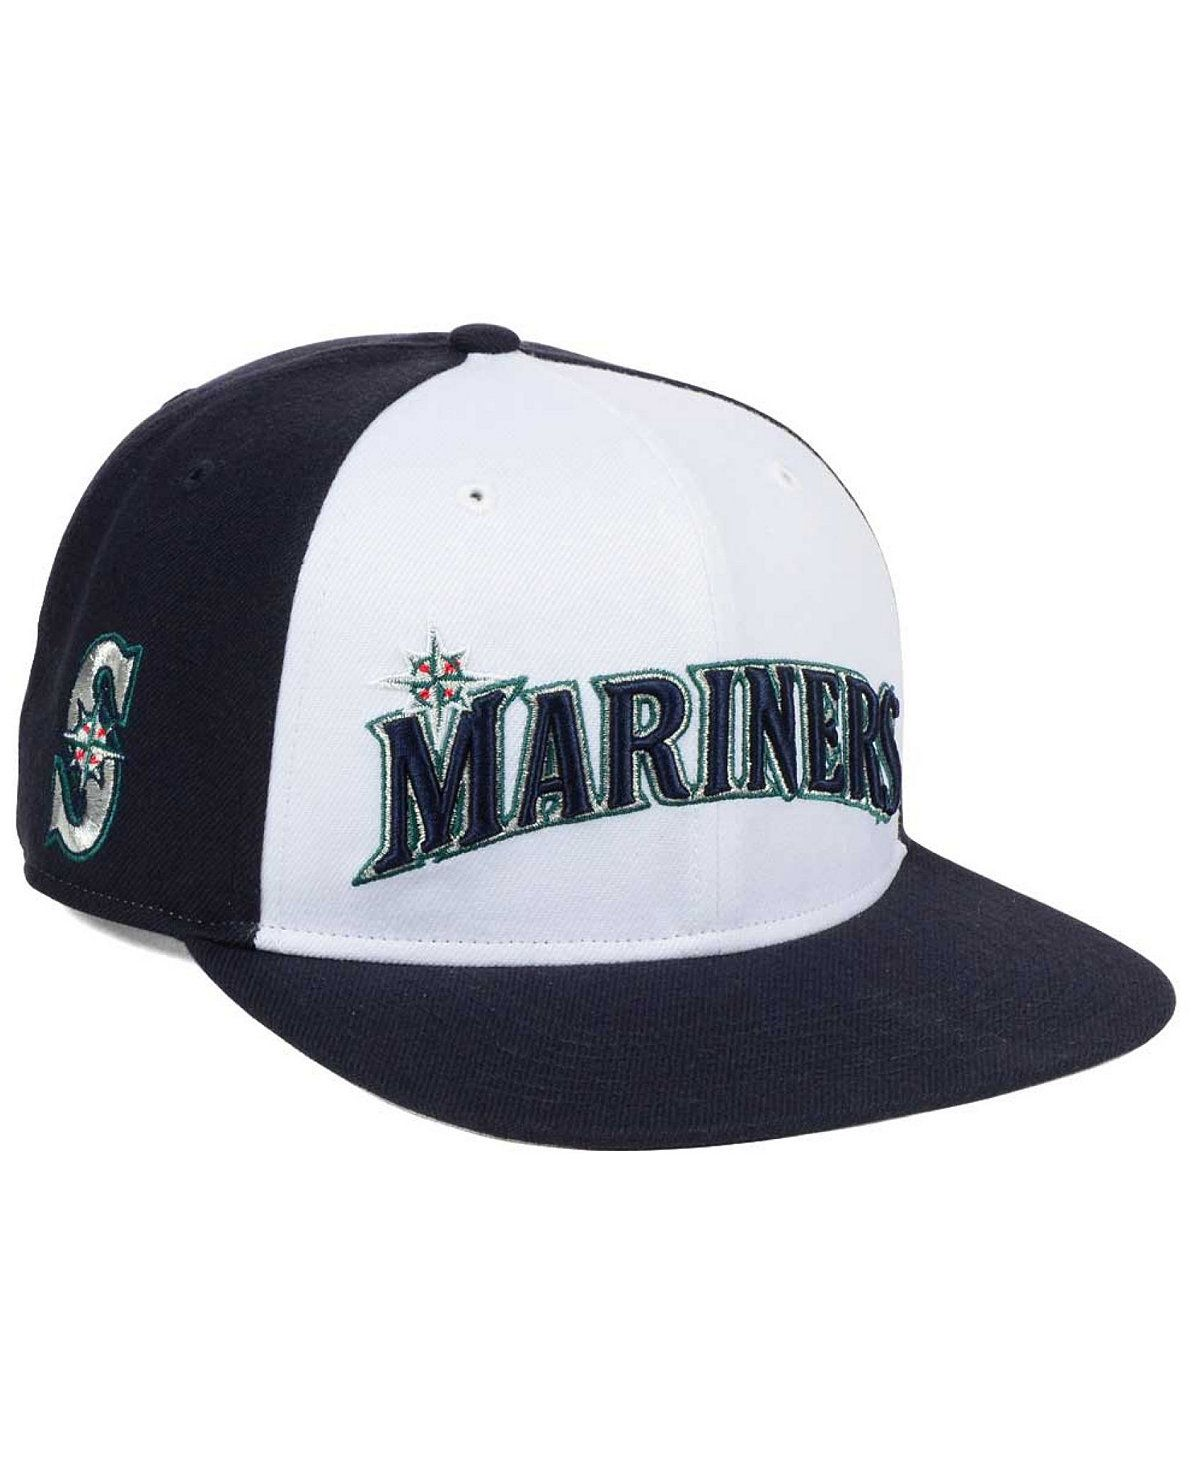 wholesale dealer f36b4 41dce  47 Brand Seattle Mariners Script Side Snapback Cap - Sports Fan Shop By  Lids - Men - Macy s.